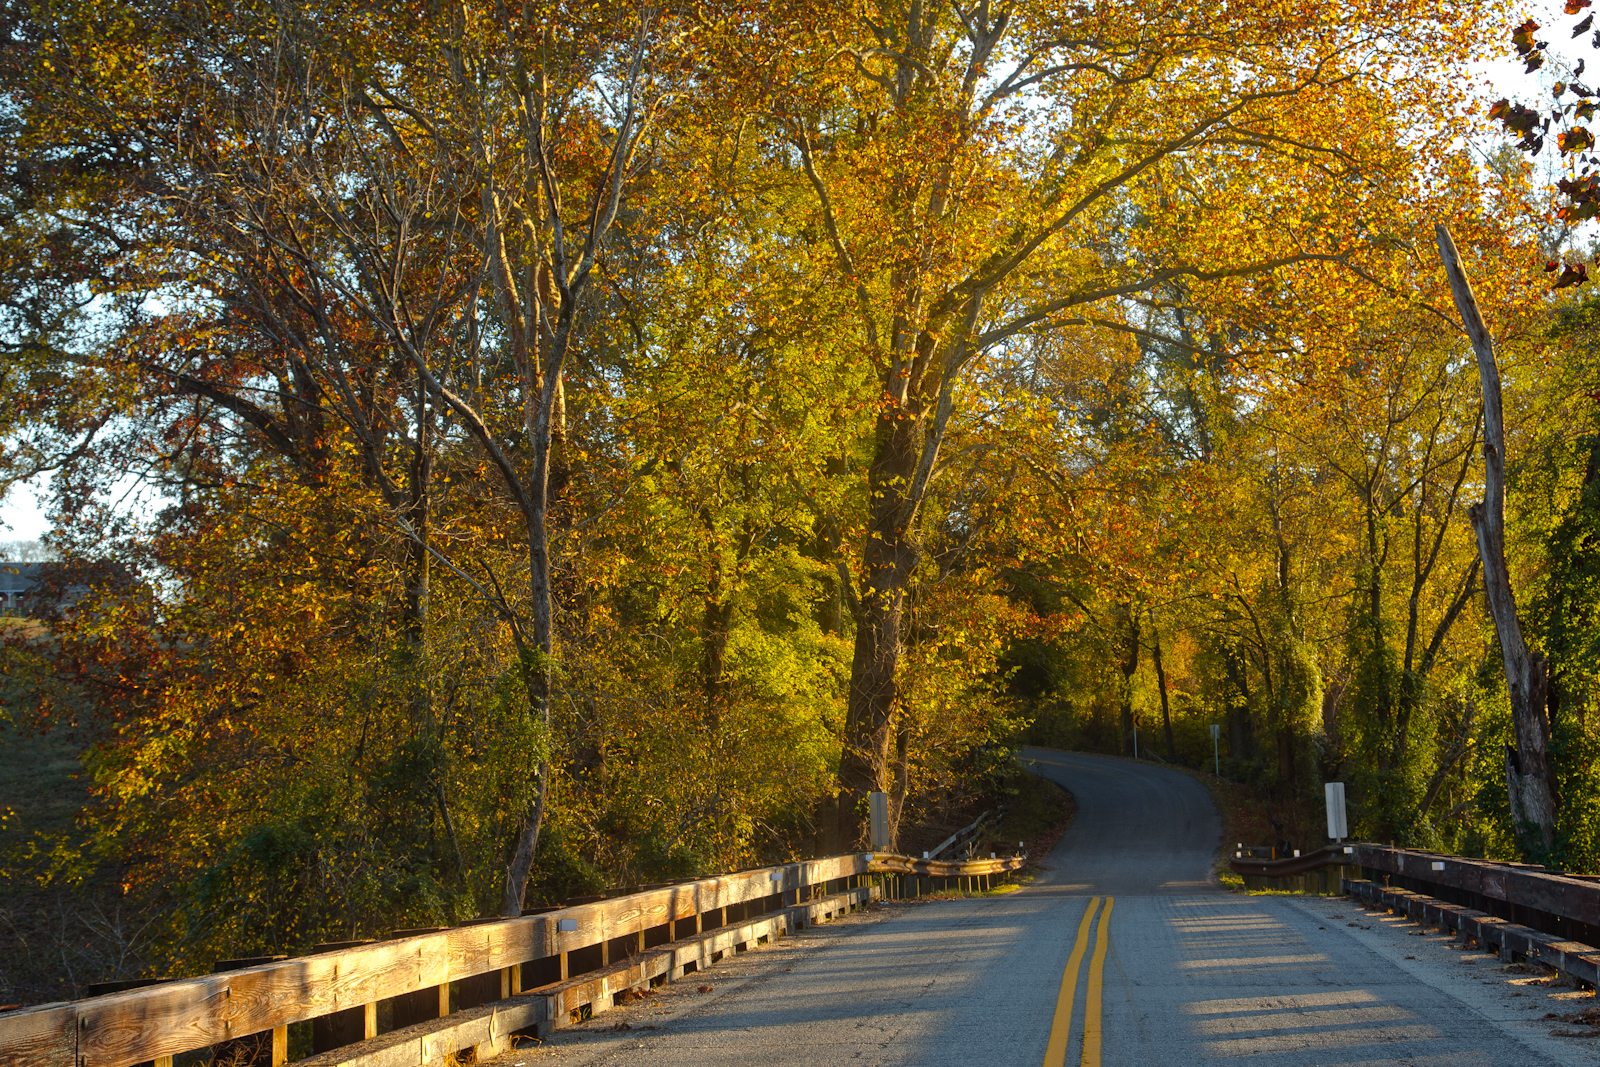 autumn-country-road-50-of-1-2